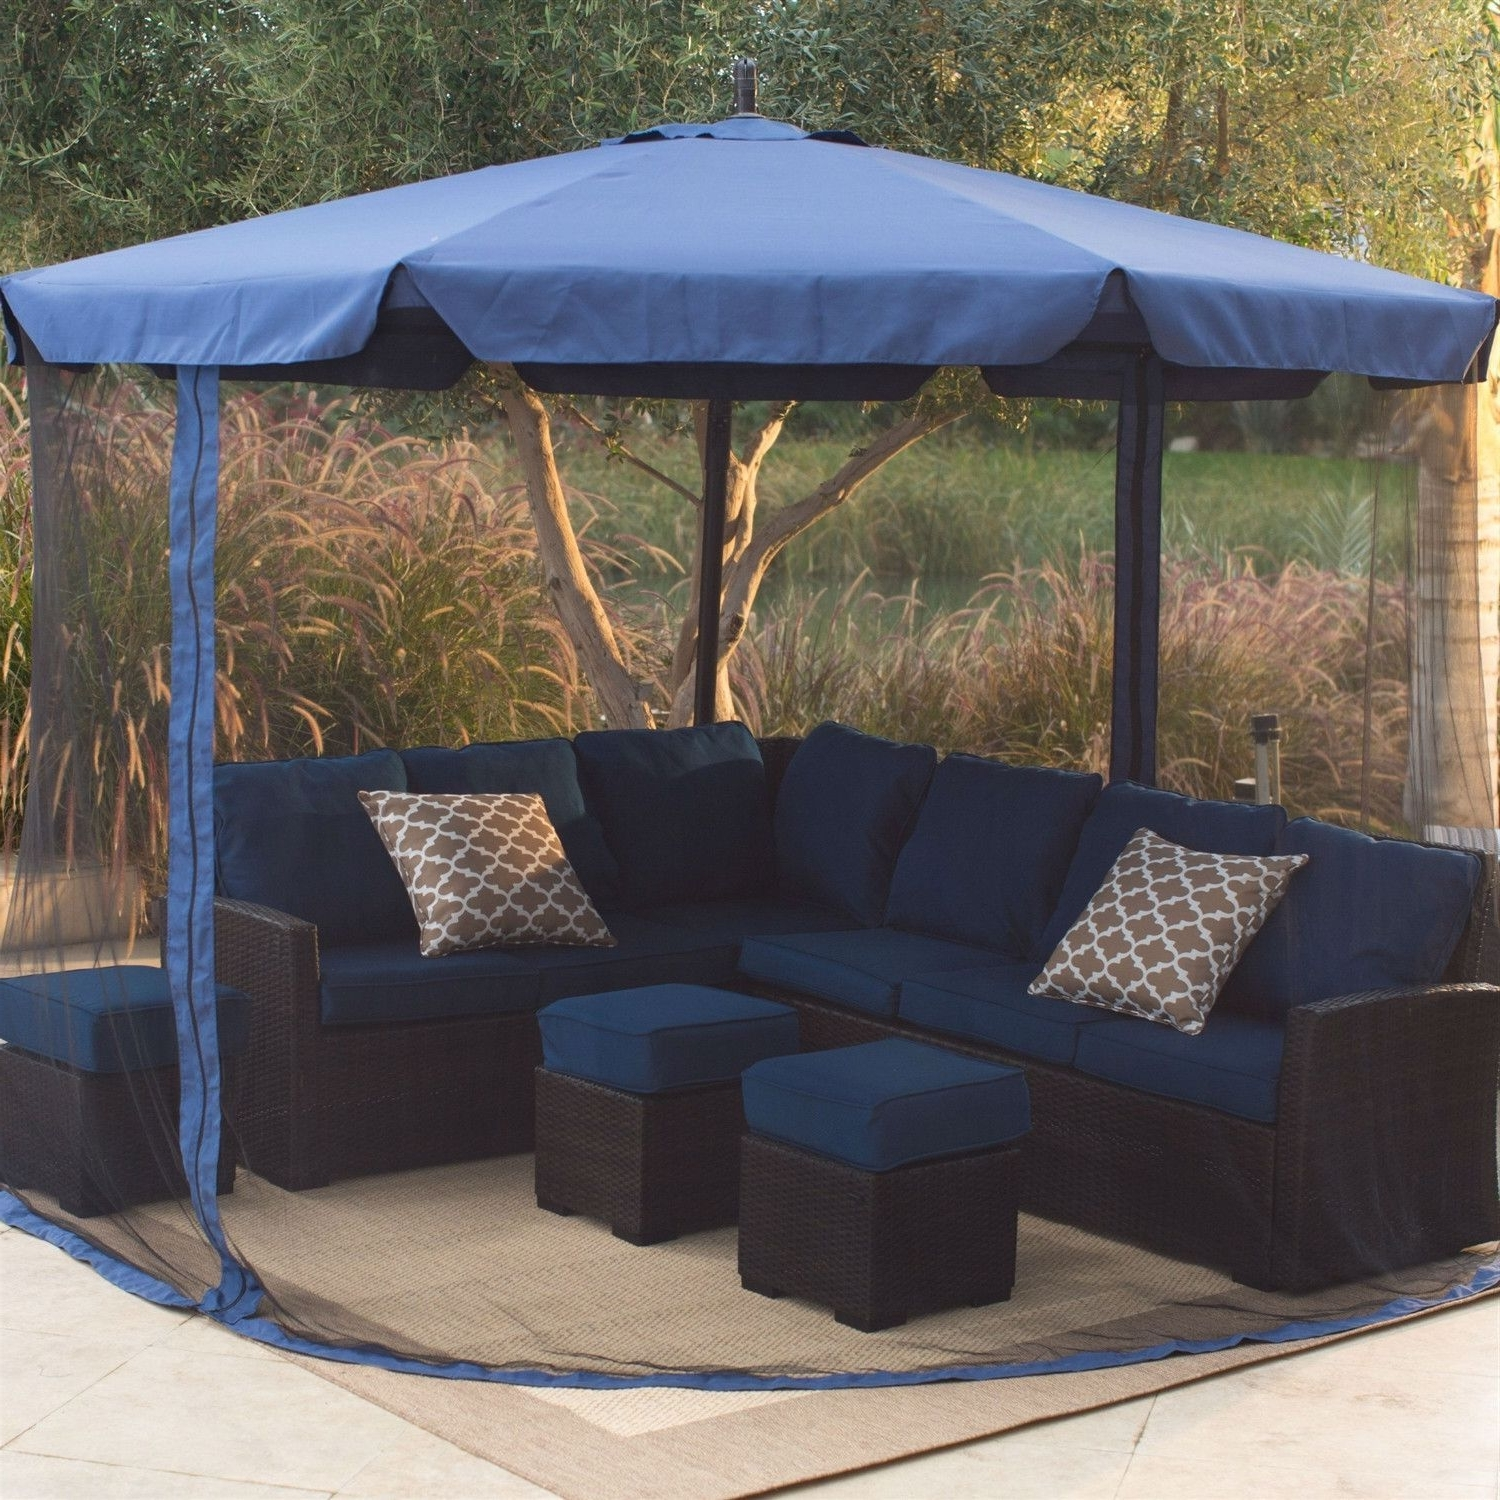 2019 11 Ft Cantilever Crank Lift Patio Umbrella In Blue With Removable In 11 Ft Patio Umbrellas (Gallery 11 of 20)